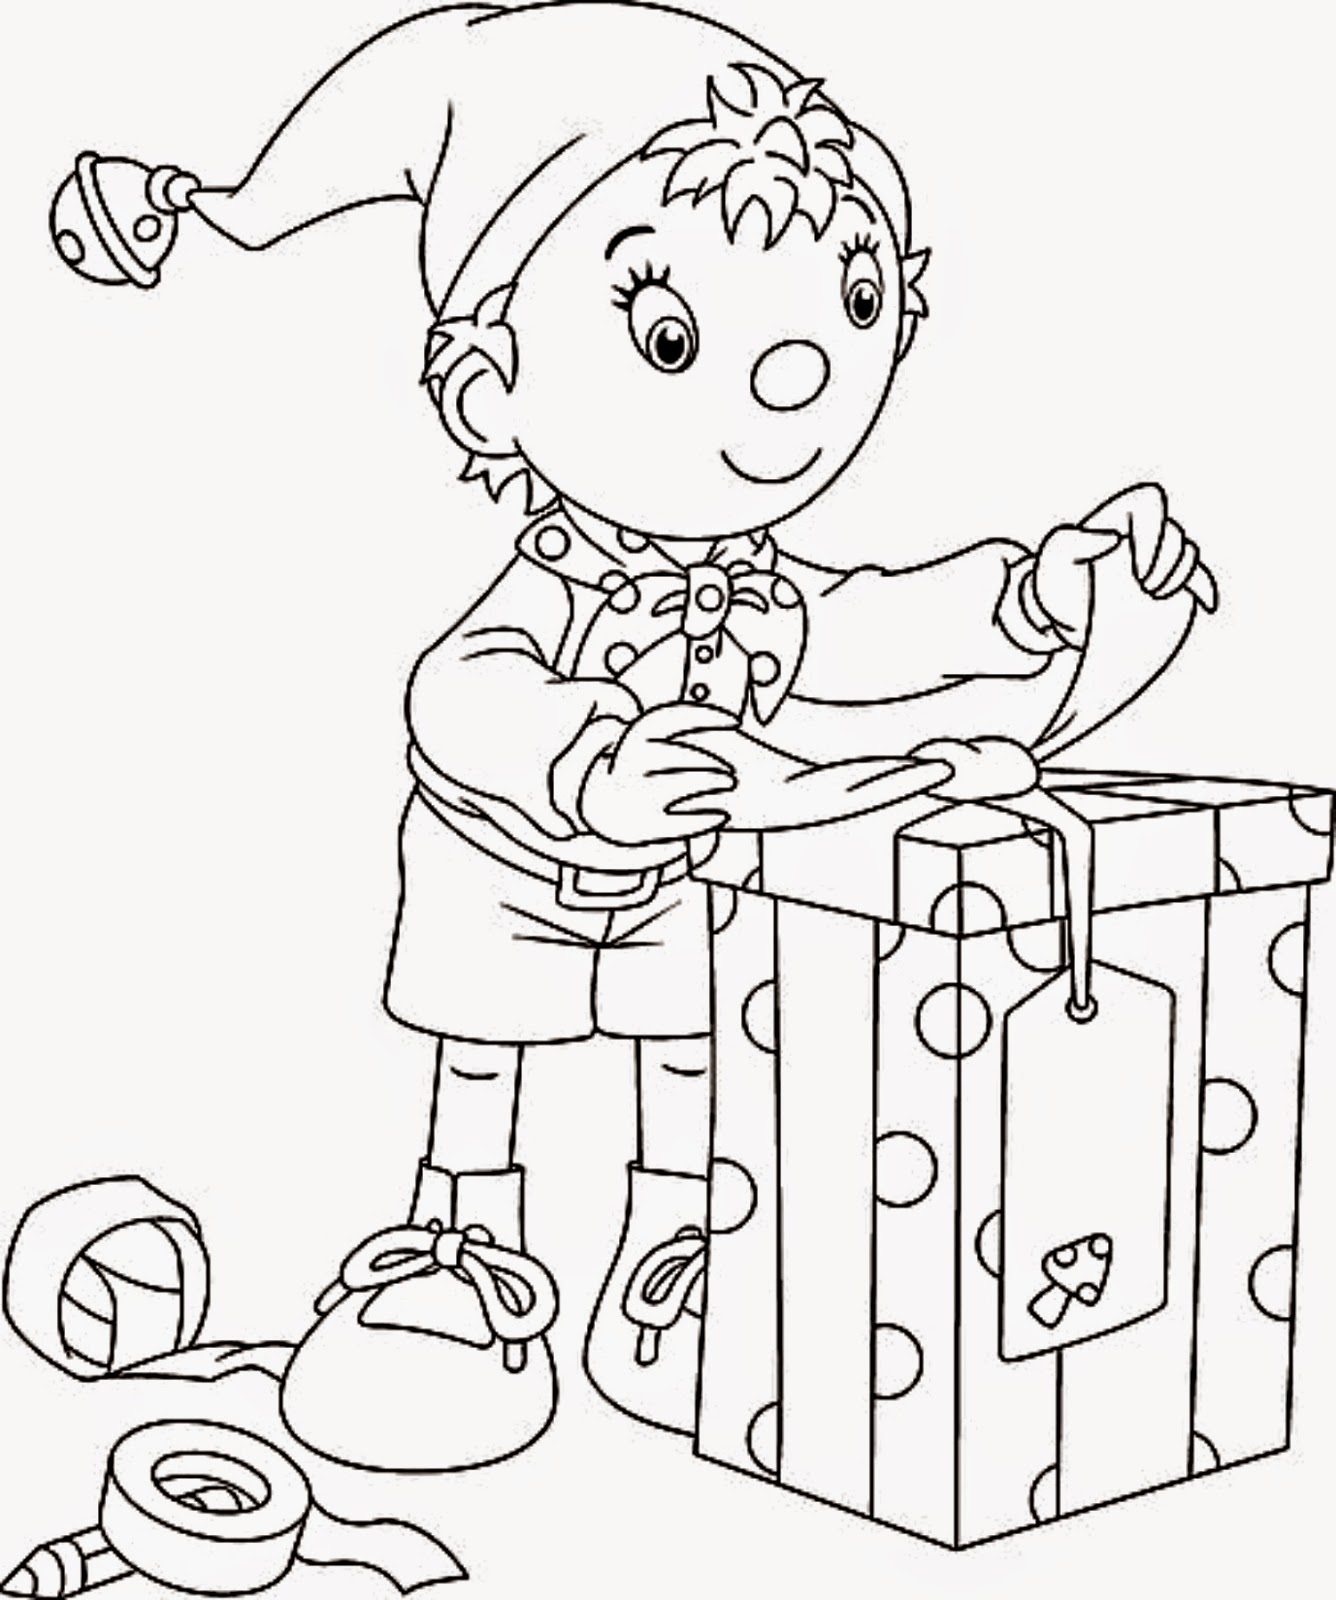 elf christmas coloring pages printable - photo#31